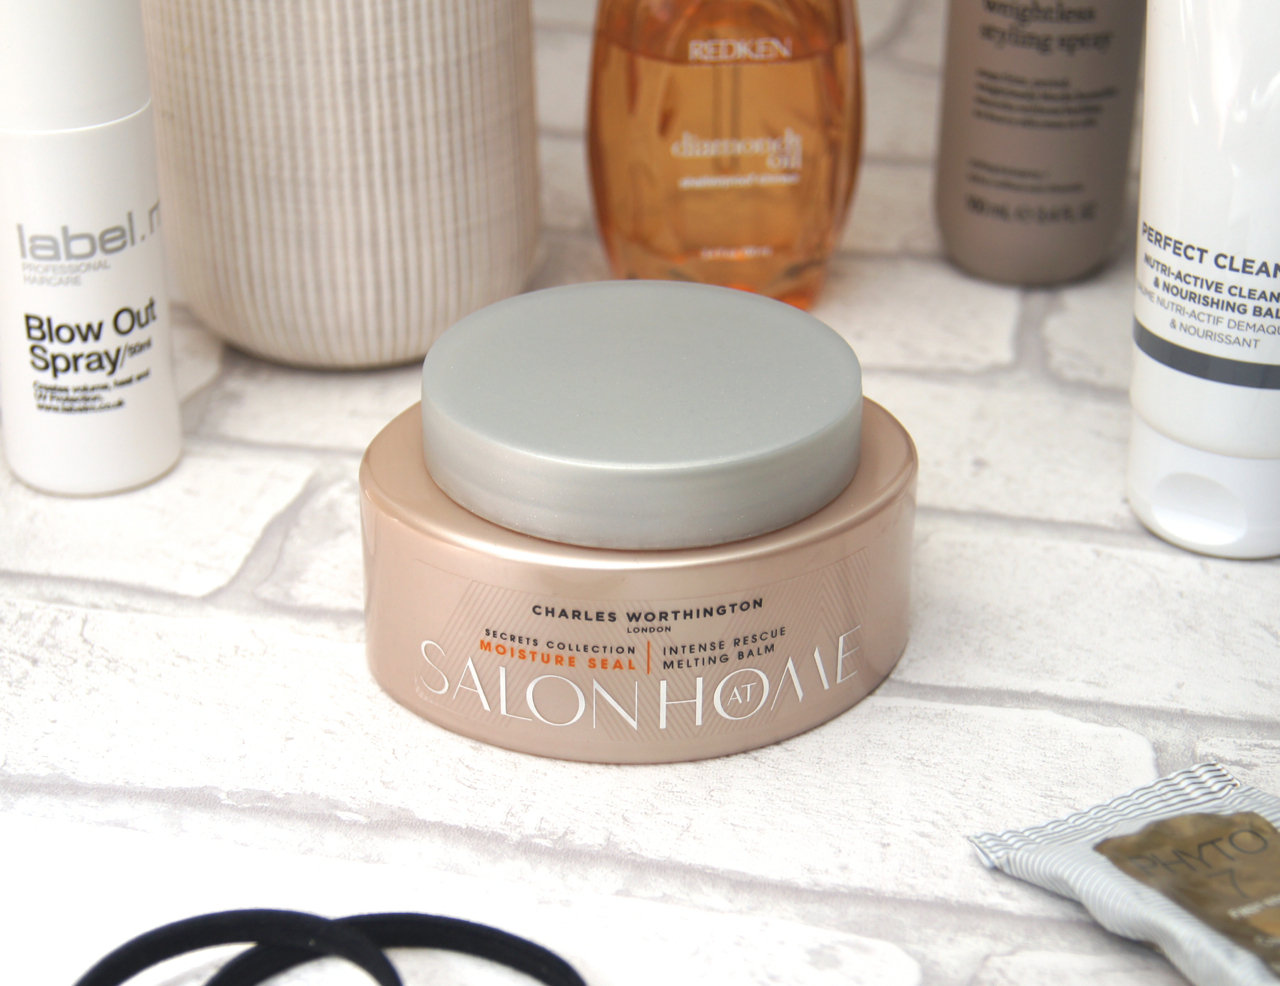 charles worthington intense rescue melting balm hair treatment review